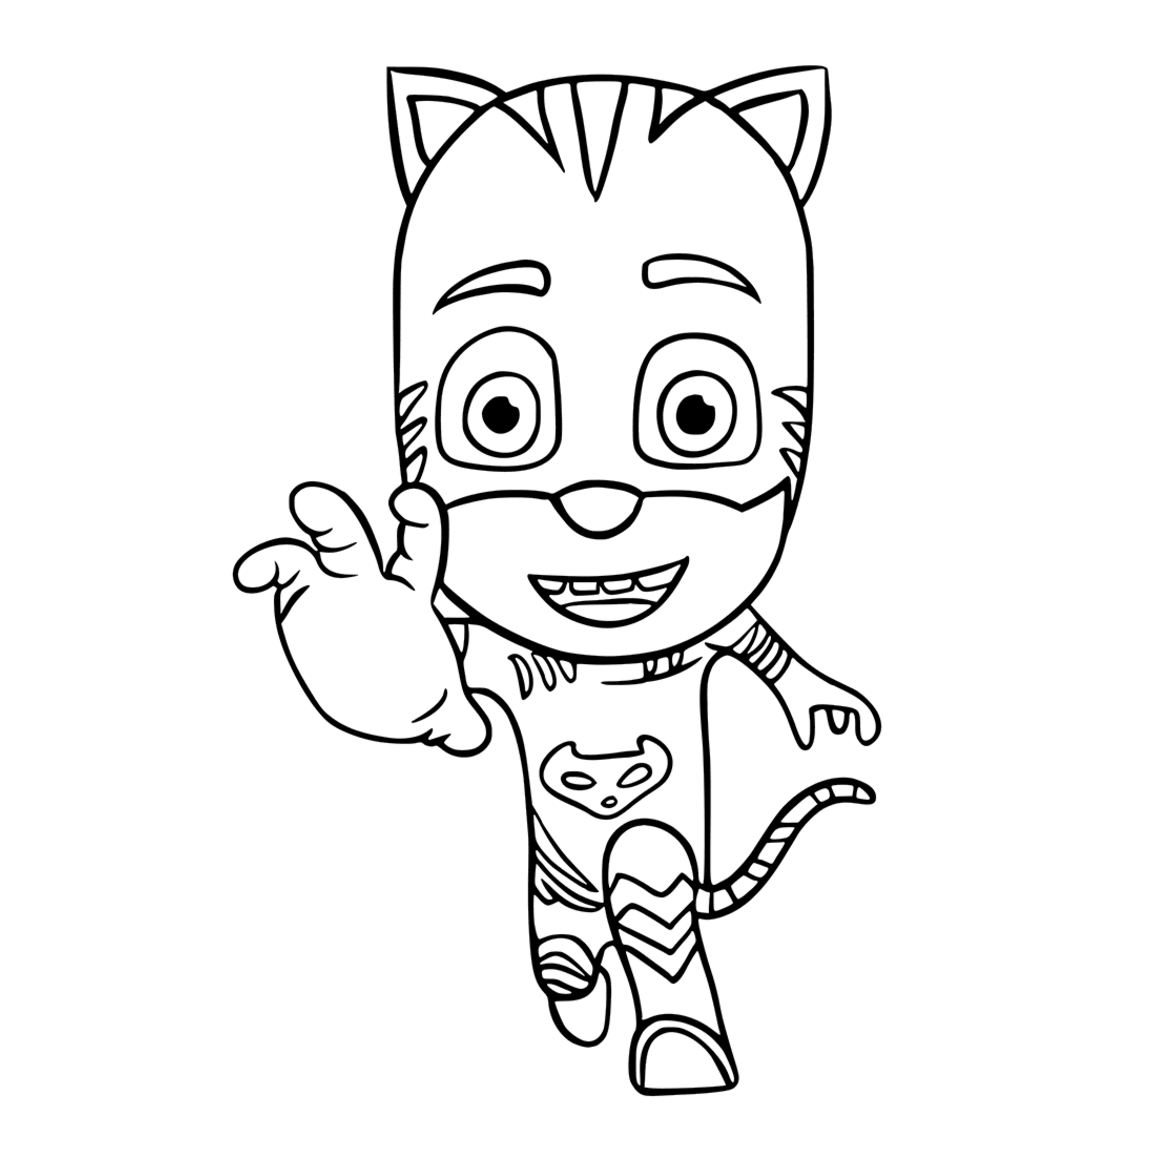 coloring pages pj masks coloring pages best coloring pages for kids